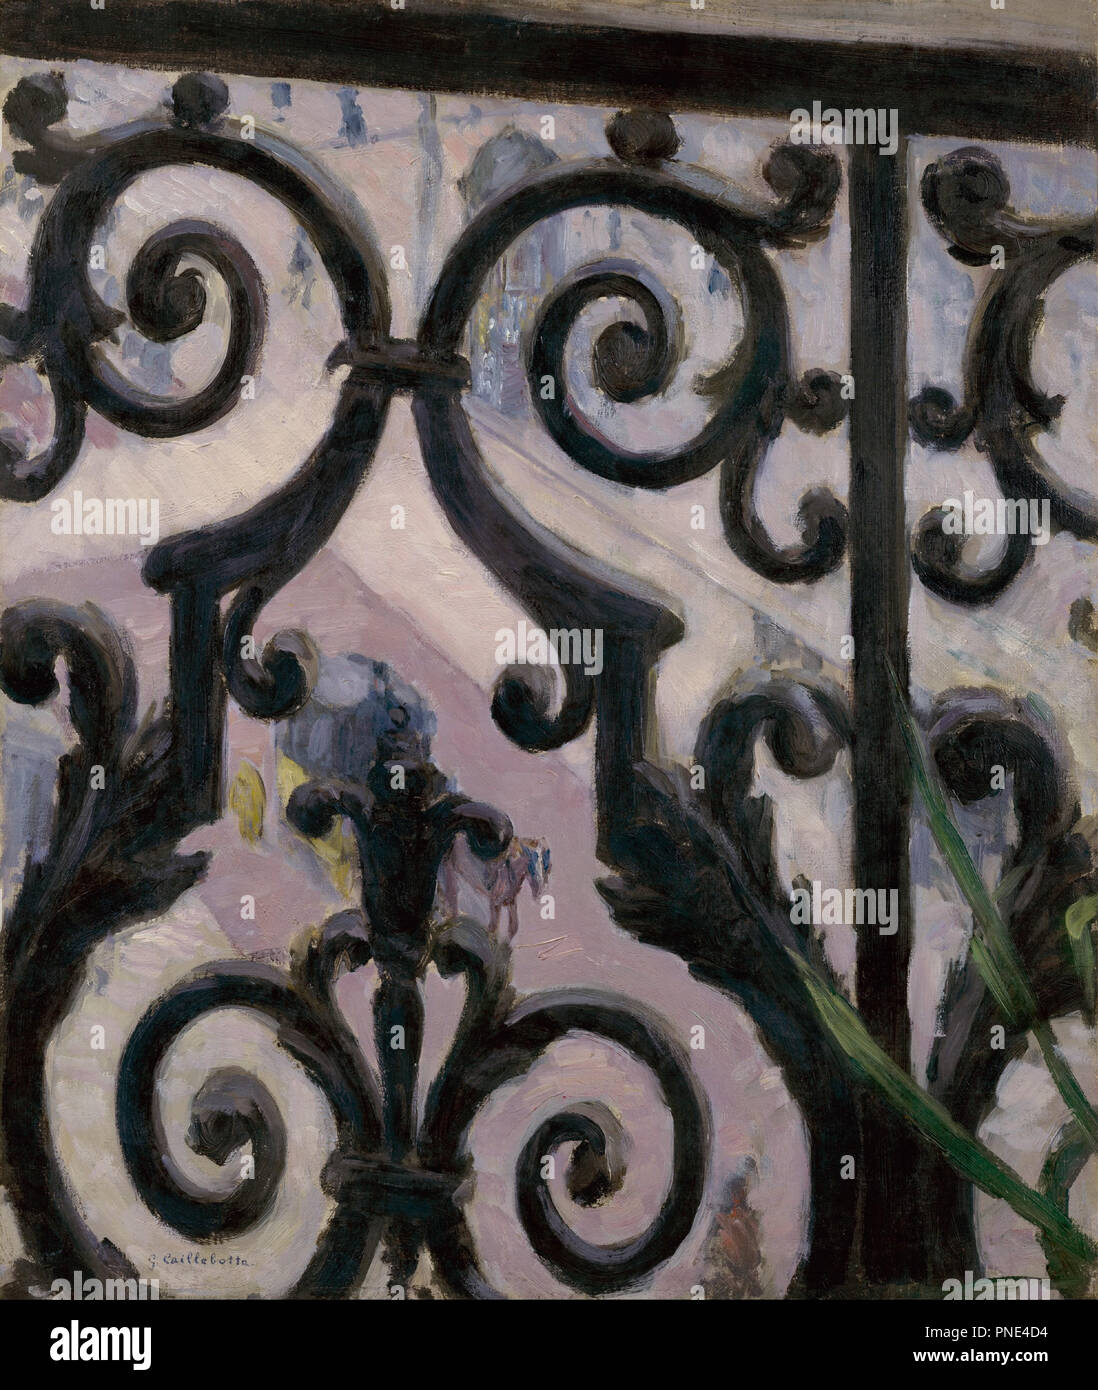 View from a balcony. Date/Period: 1880. Painting. Oil on canvas. Author: Gustave Caillebotte. CAILLEBOTTE, GUSTAVE. - Stock Image